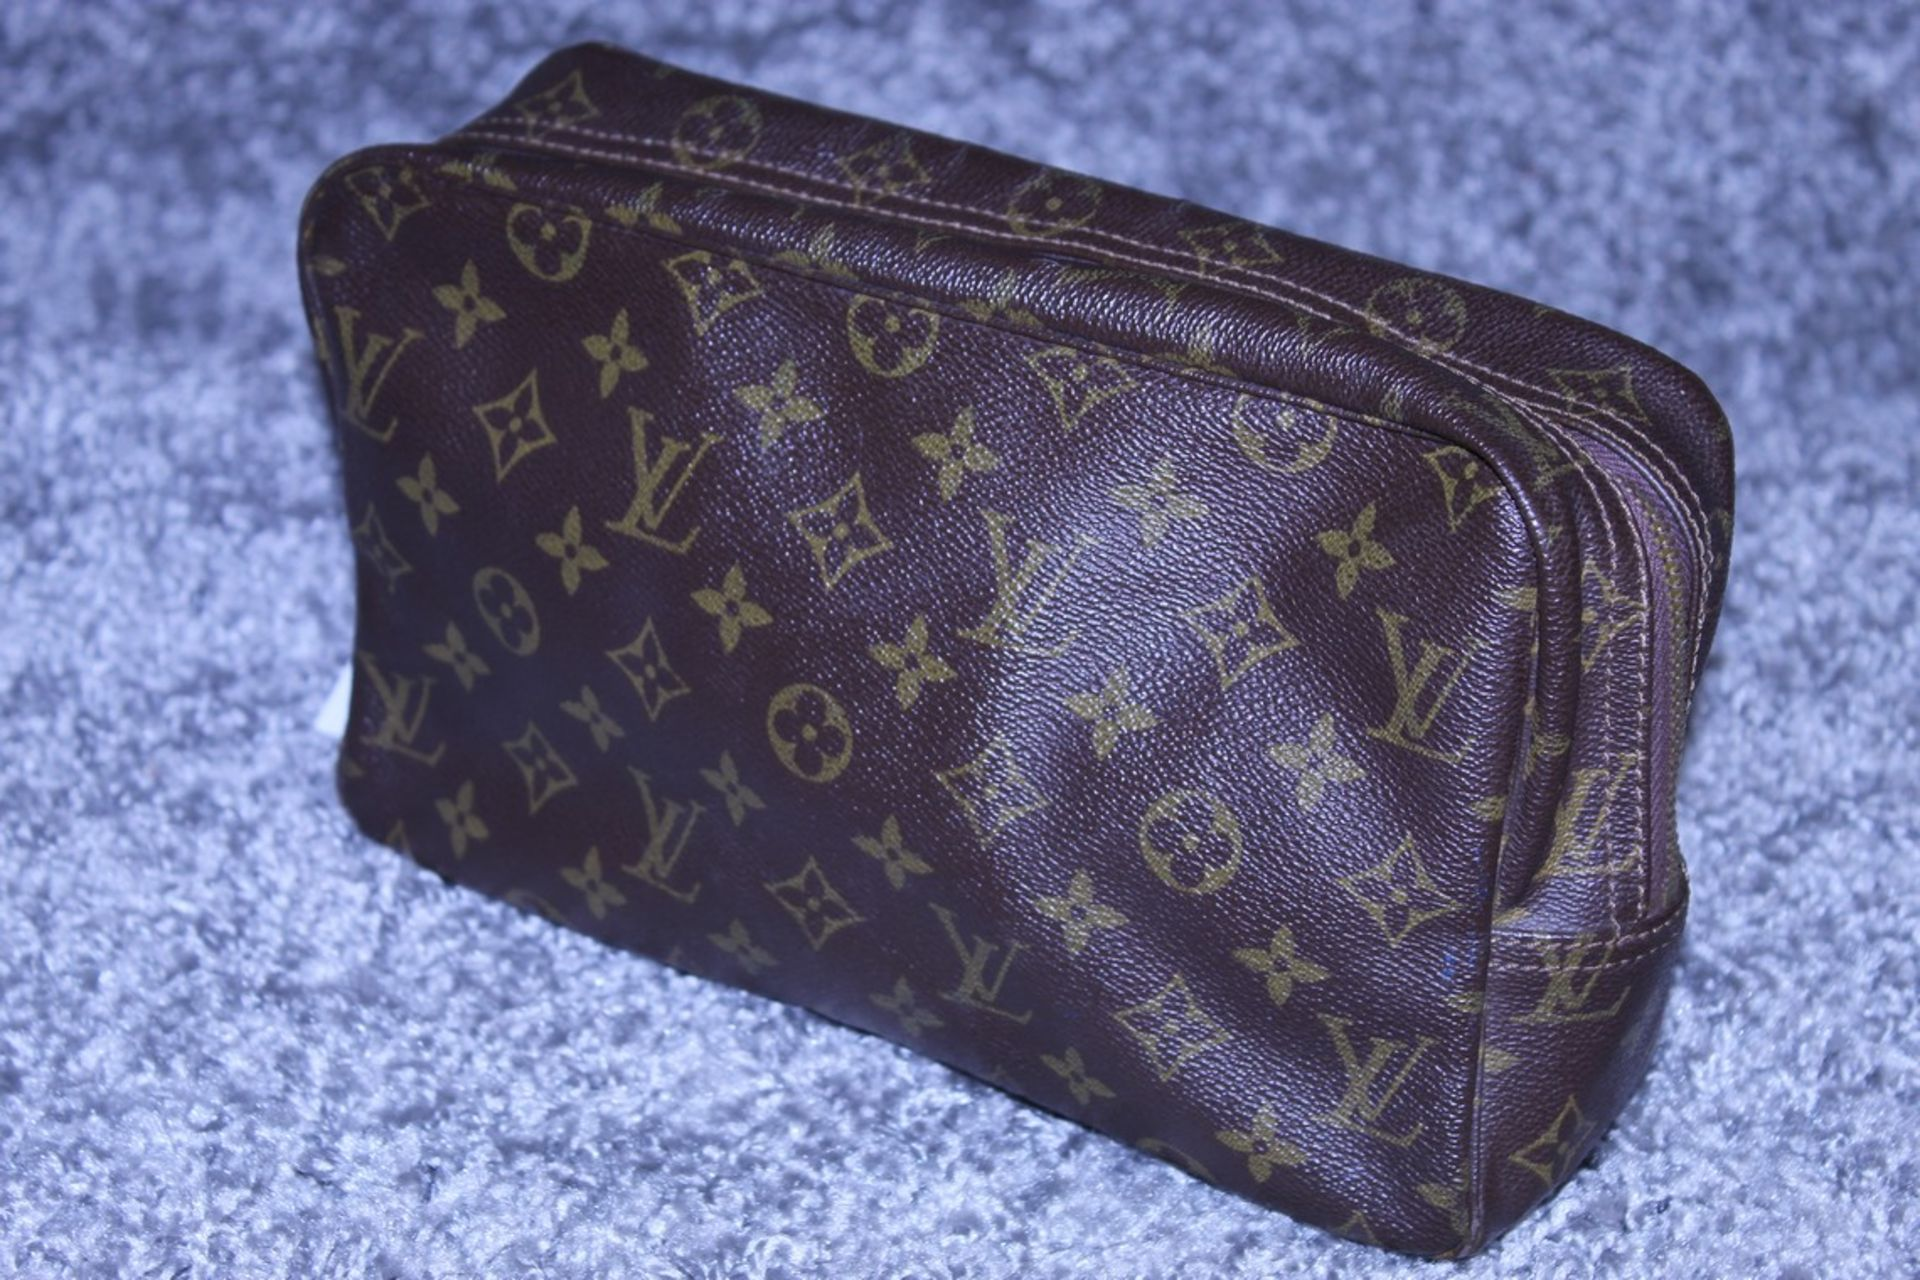 RRP £520 Louis Vuitton Toiletry Pouch, Brown Coated Canvas (Production Code 821) Condition Rating - Image 3 of 4